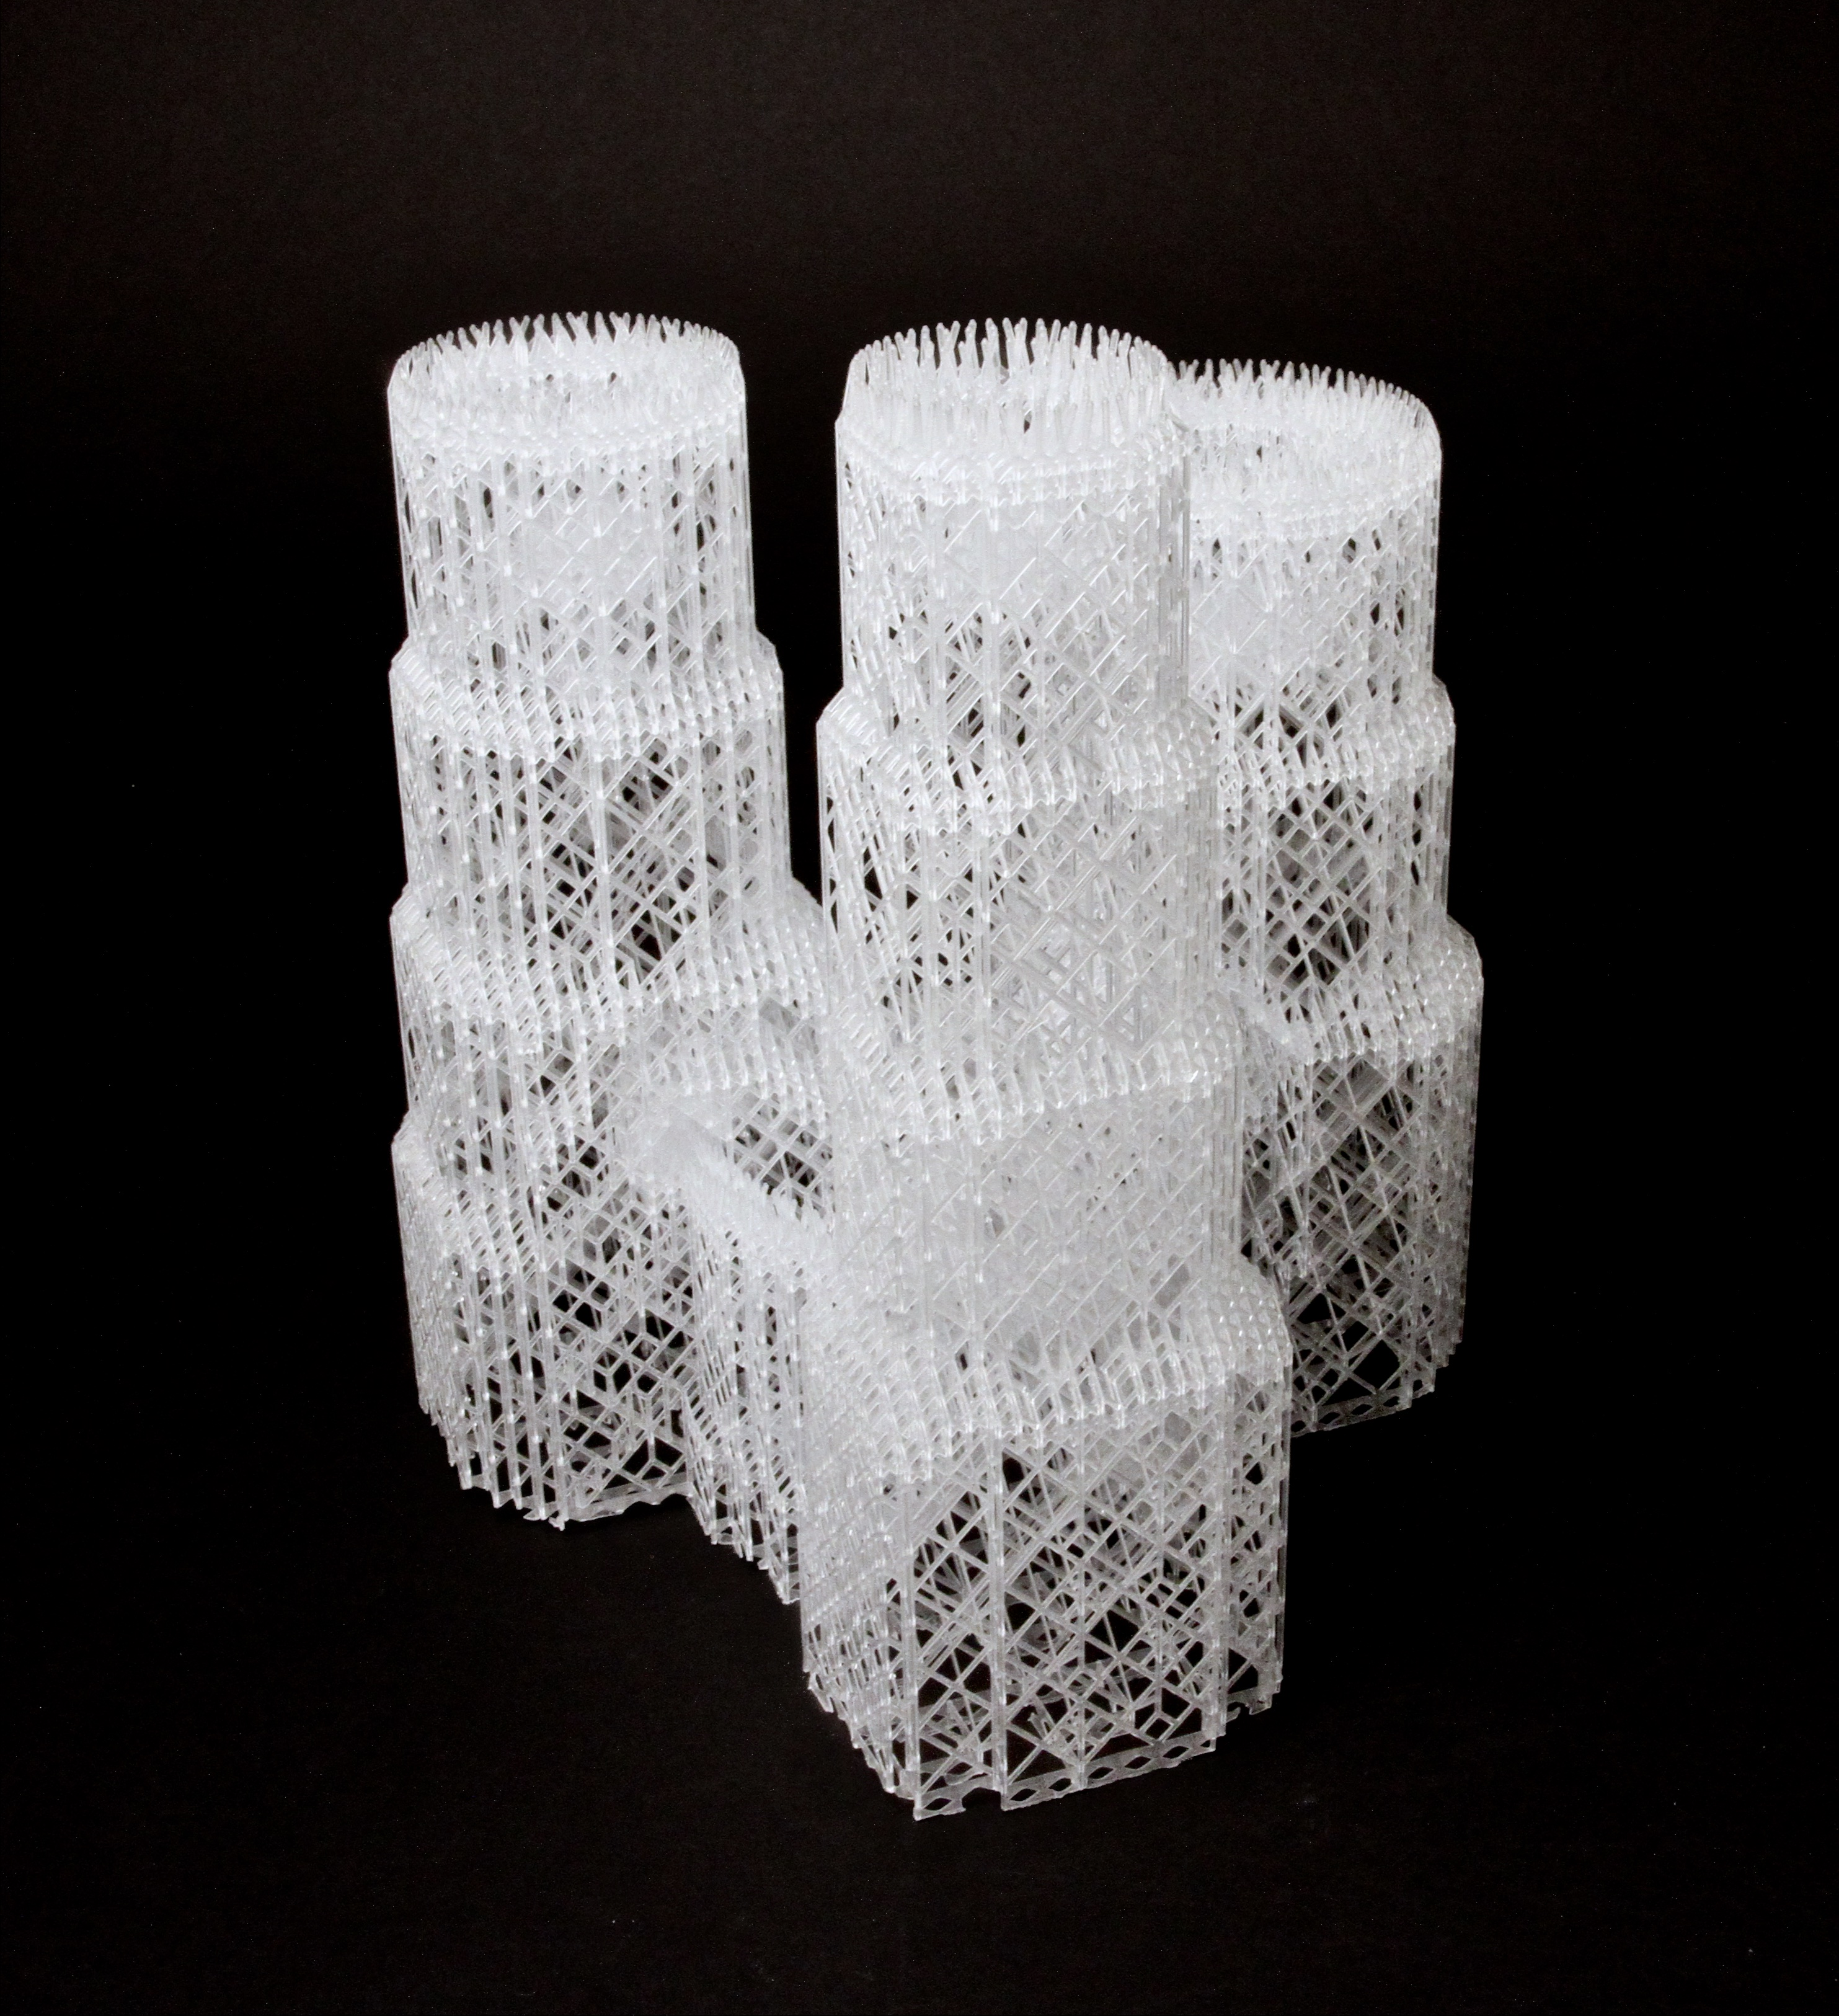 Support structure for the Skafaldo side table printed by Materialise